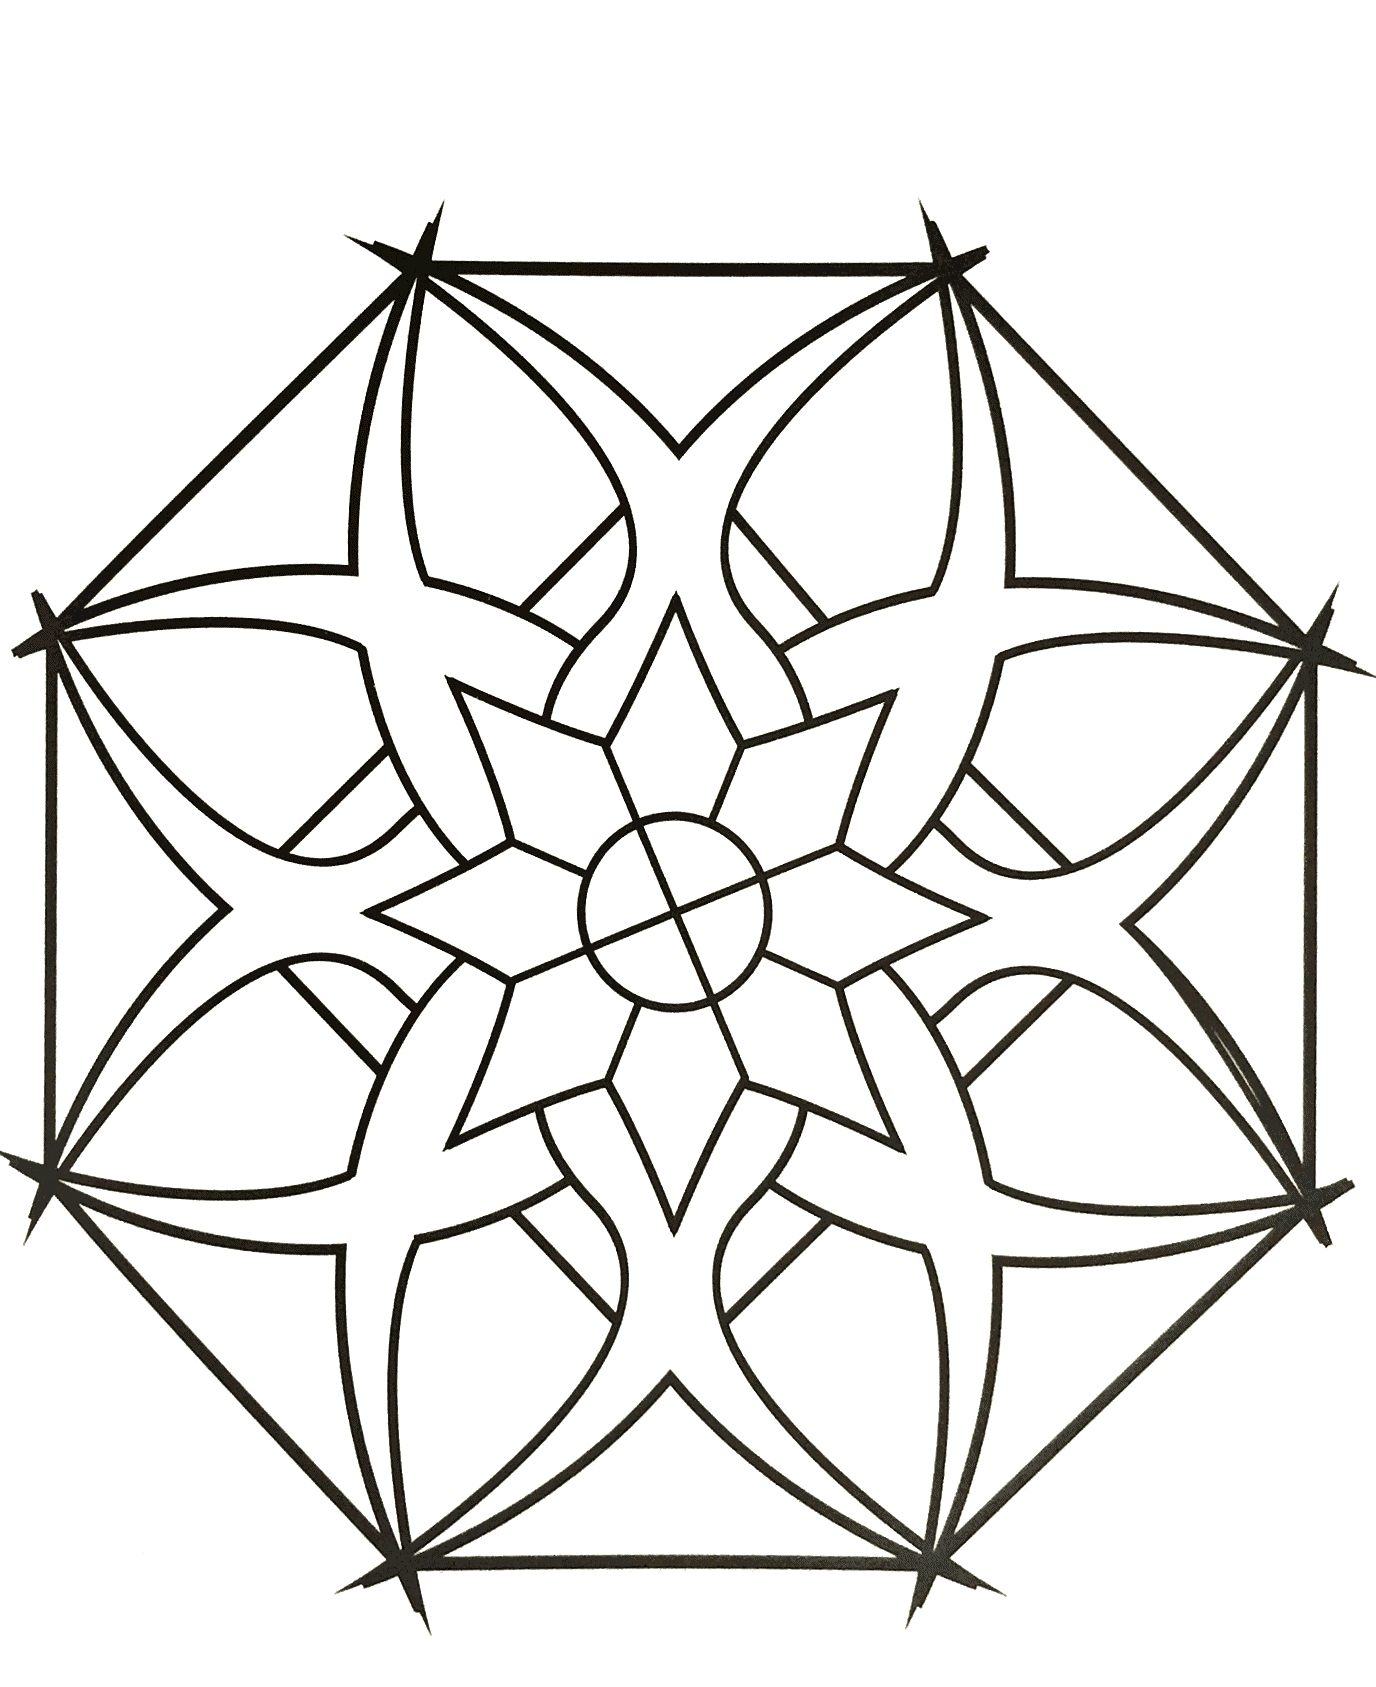 27 Simple Mandala Coloring Pages Compilation | FREE COLORING PAGES ...